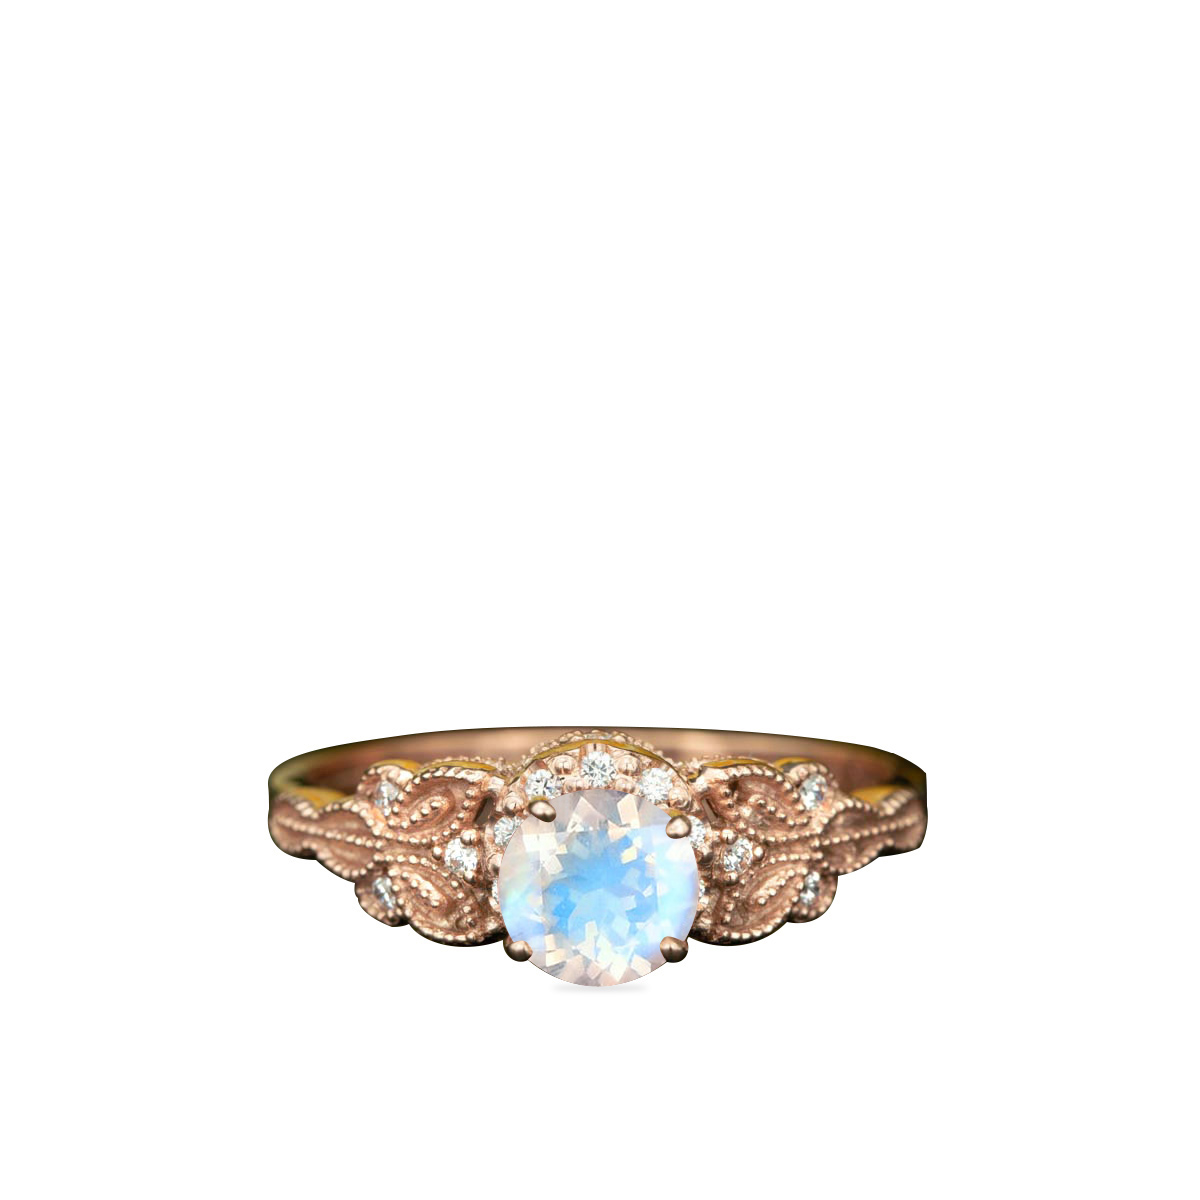 1.25 Carat Round Cut Blue Moonstone And